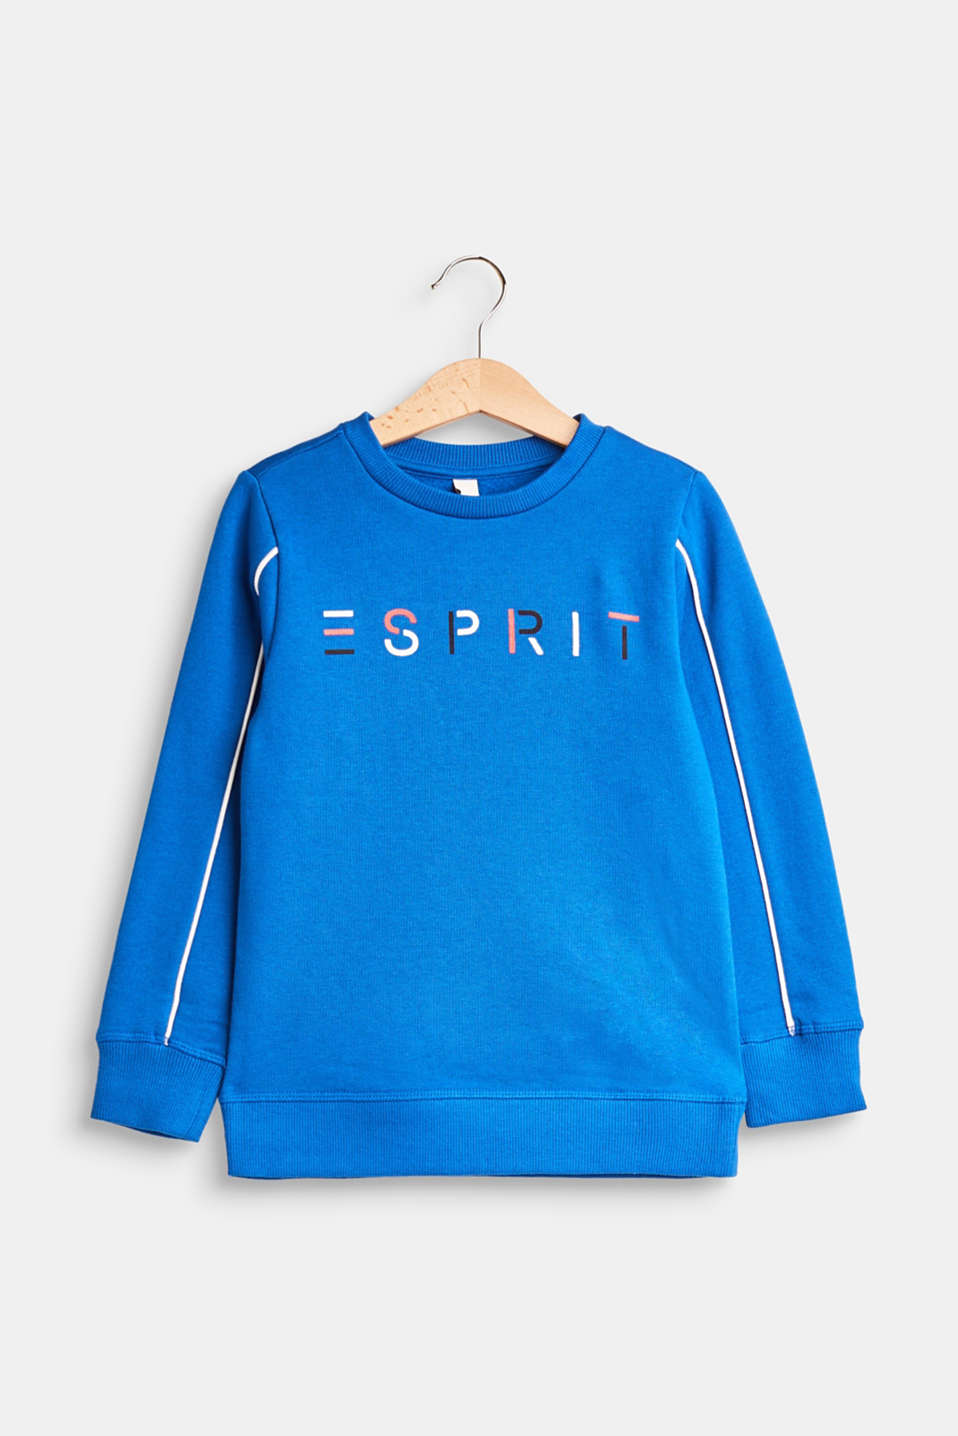 Esprit - Logo sweatshirt with piping, 100% cotton